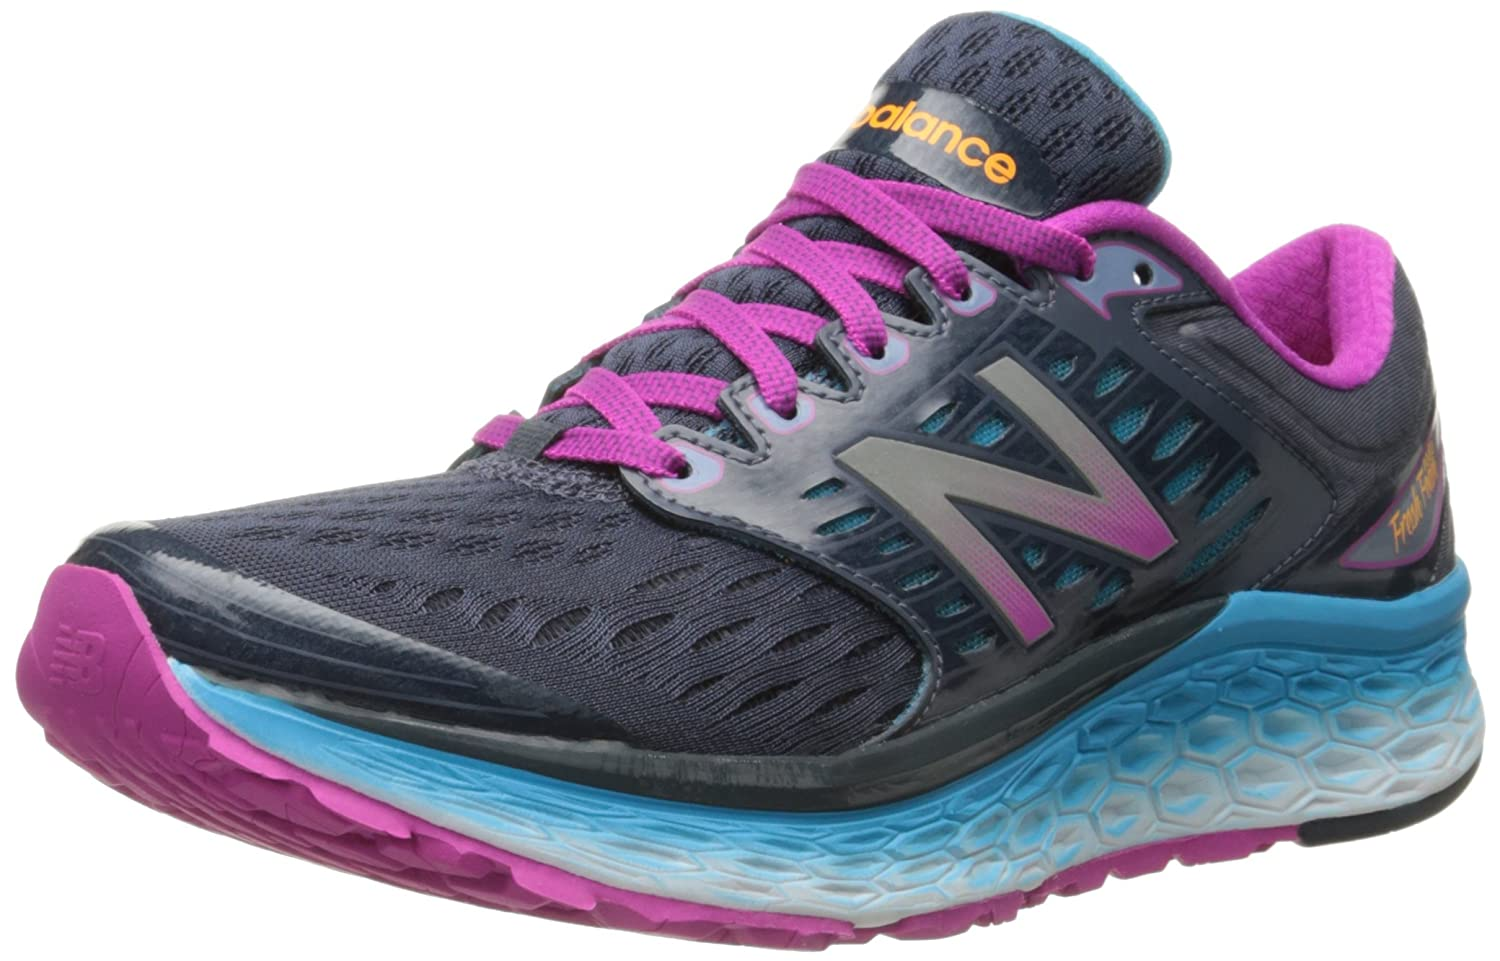 素晴らしい New Balance Women's W1080 Ankle-High B(M) Running Shoe B00YVIDAMW US ブルー B(M)/ピンク 5.5 B(M) US 5.5 B(M) US|ブルー/ピンク, コラーゲン専門店シーエスストアー:de4d0eba --- application.woxpedia.com